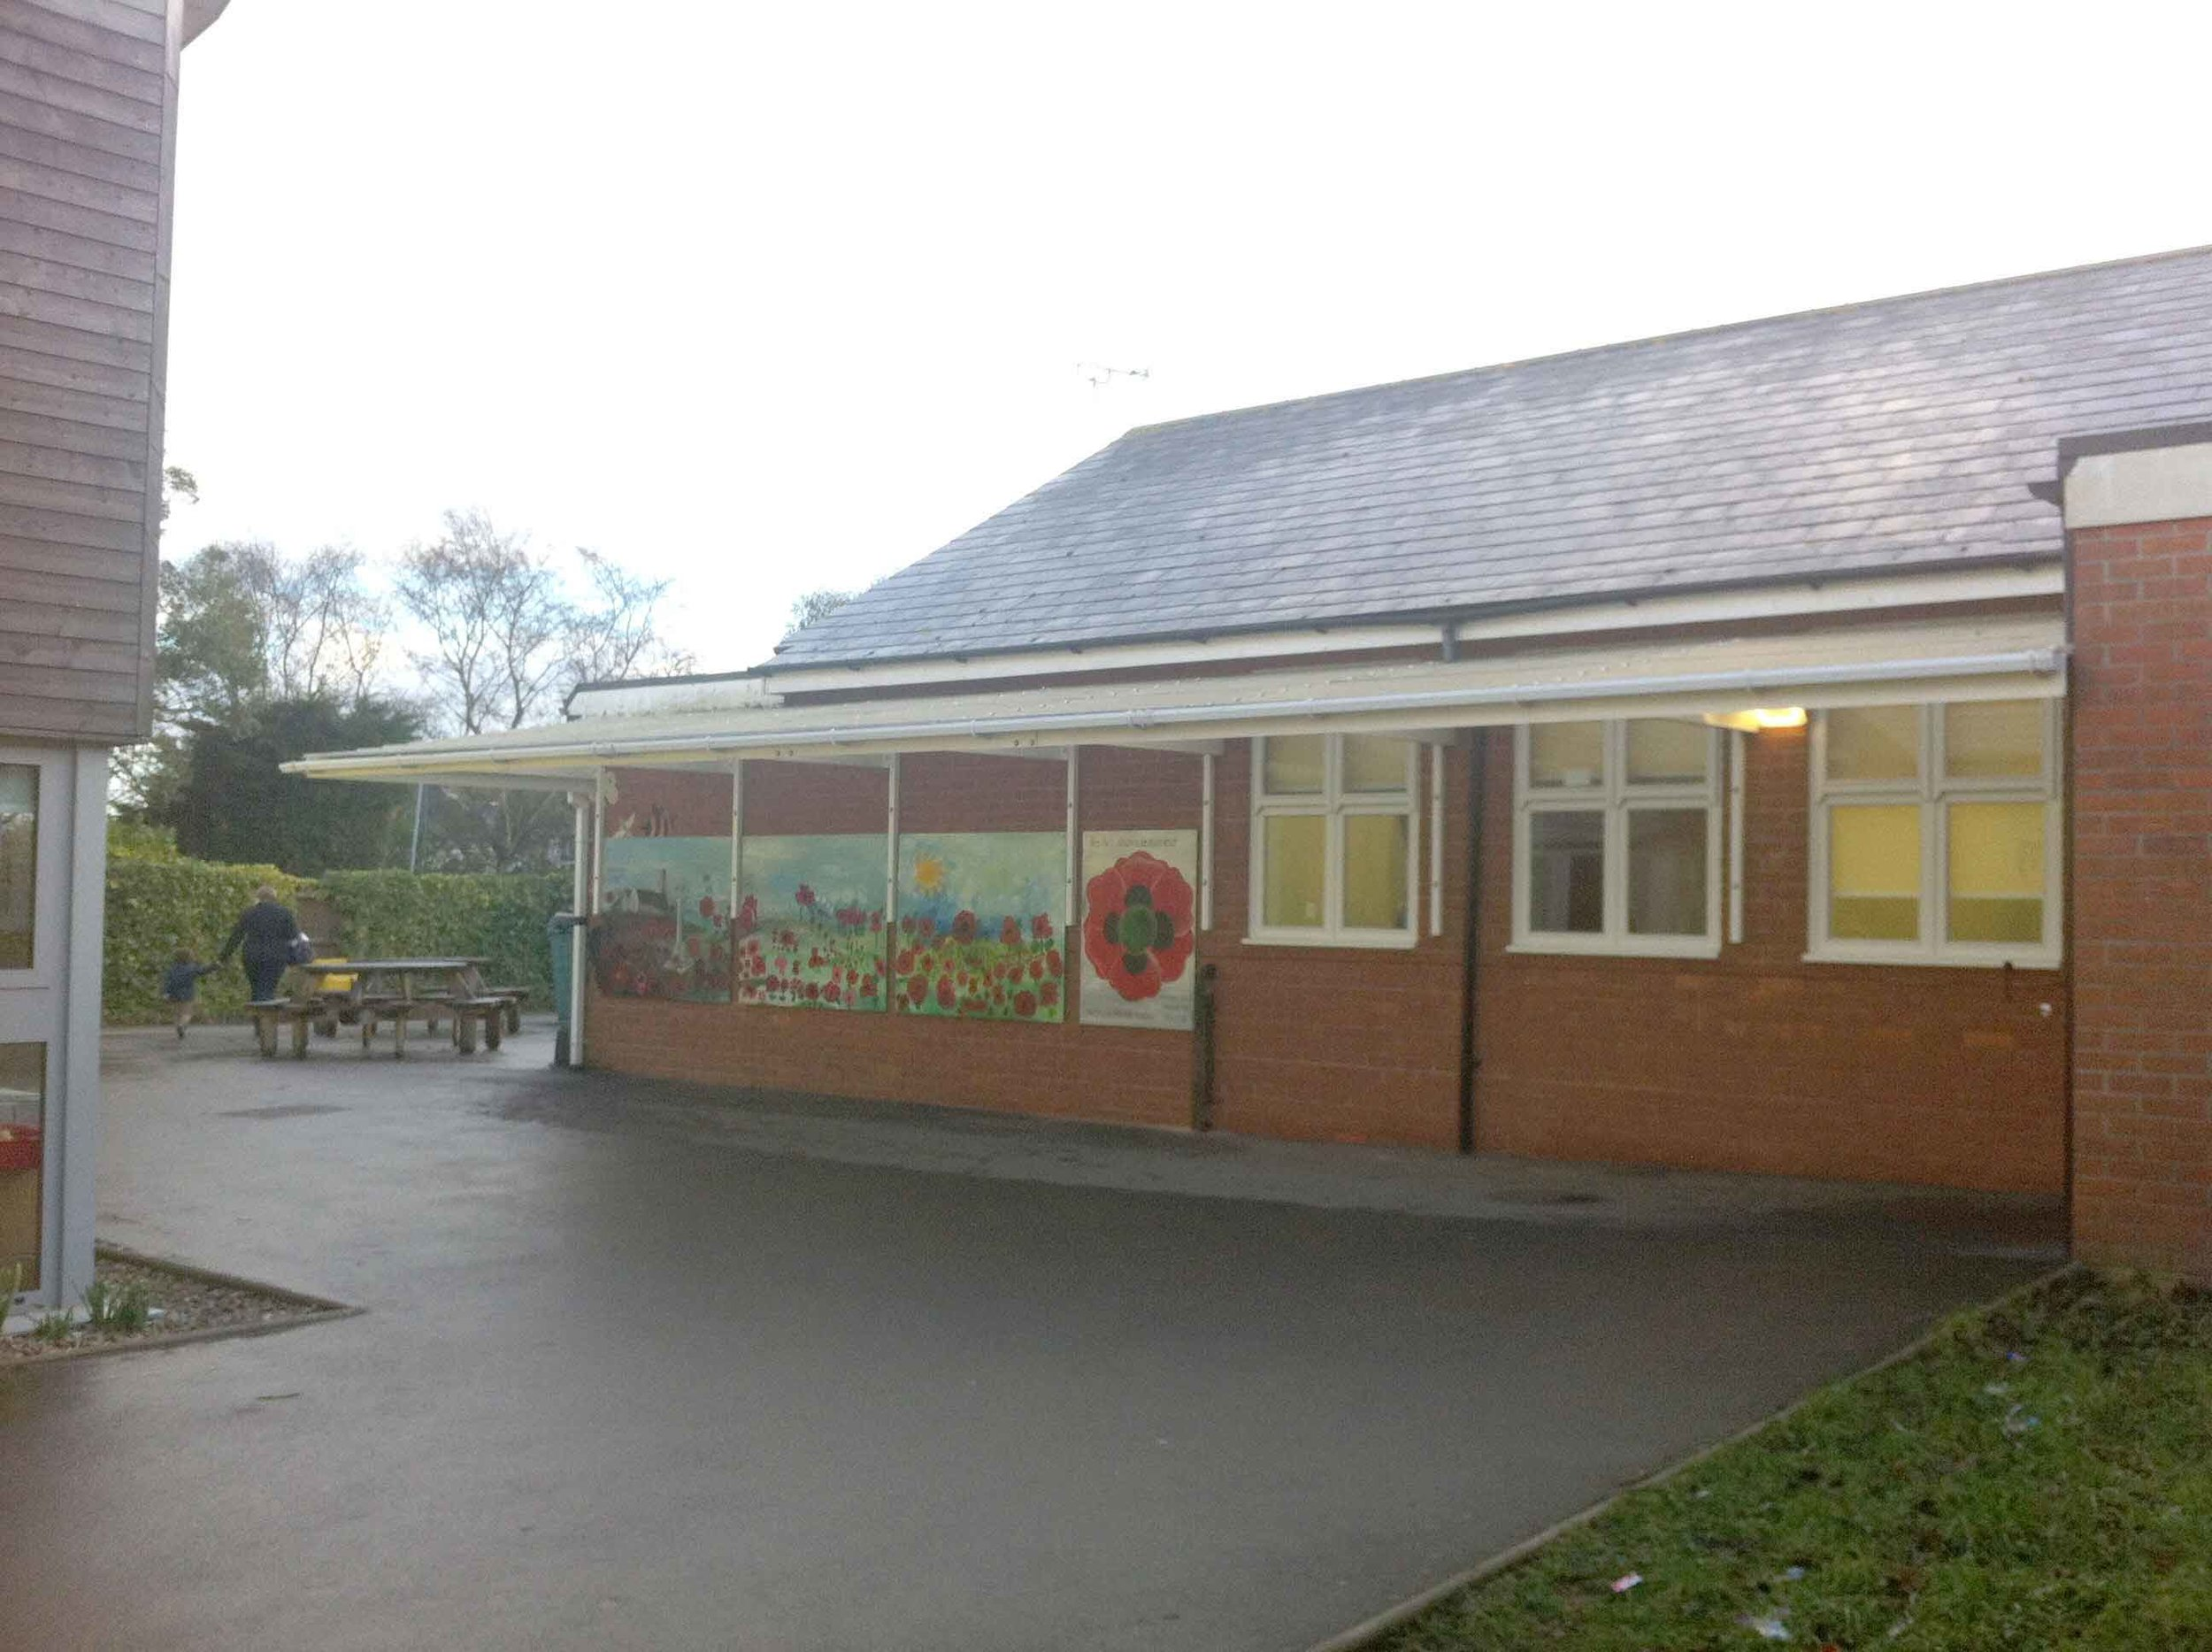 - I thought the children within the school throughout the years took such care and pride in painting their own poppy's onto the large scale piece and hopefully (after a final varnish) the mural will stand pride of place within the school grounds for many years!